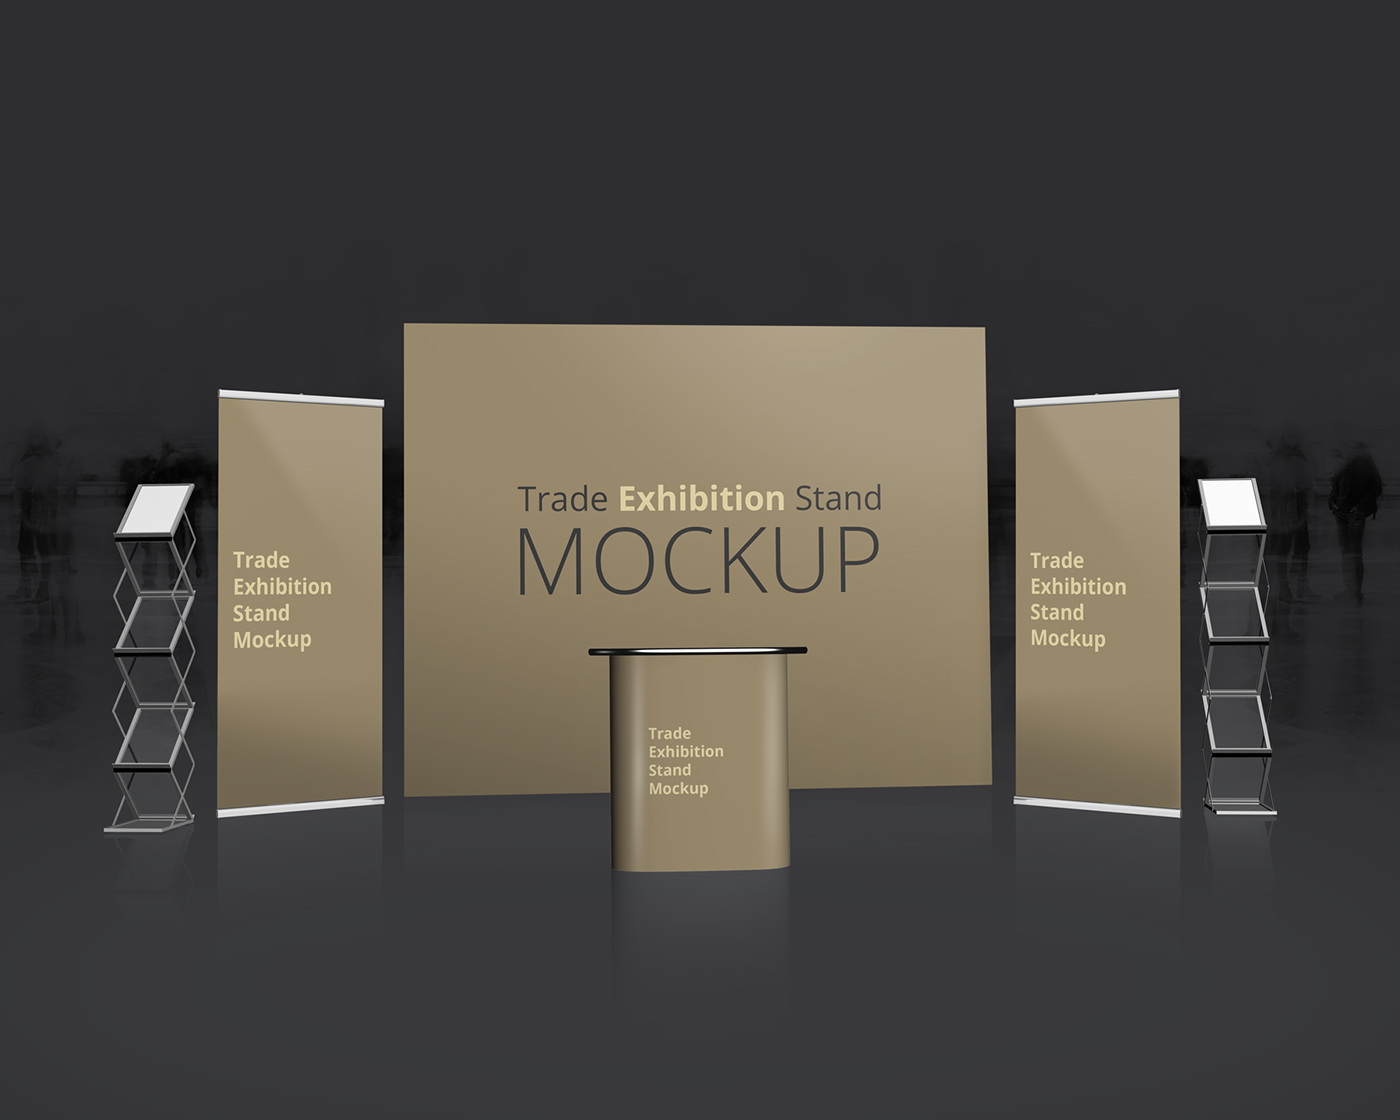 Exhibition Stand Logo : Trade exhibition stand mockup on behance